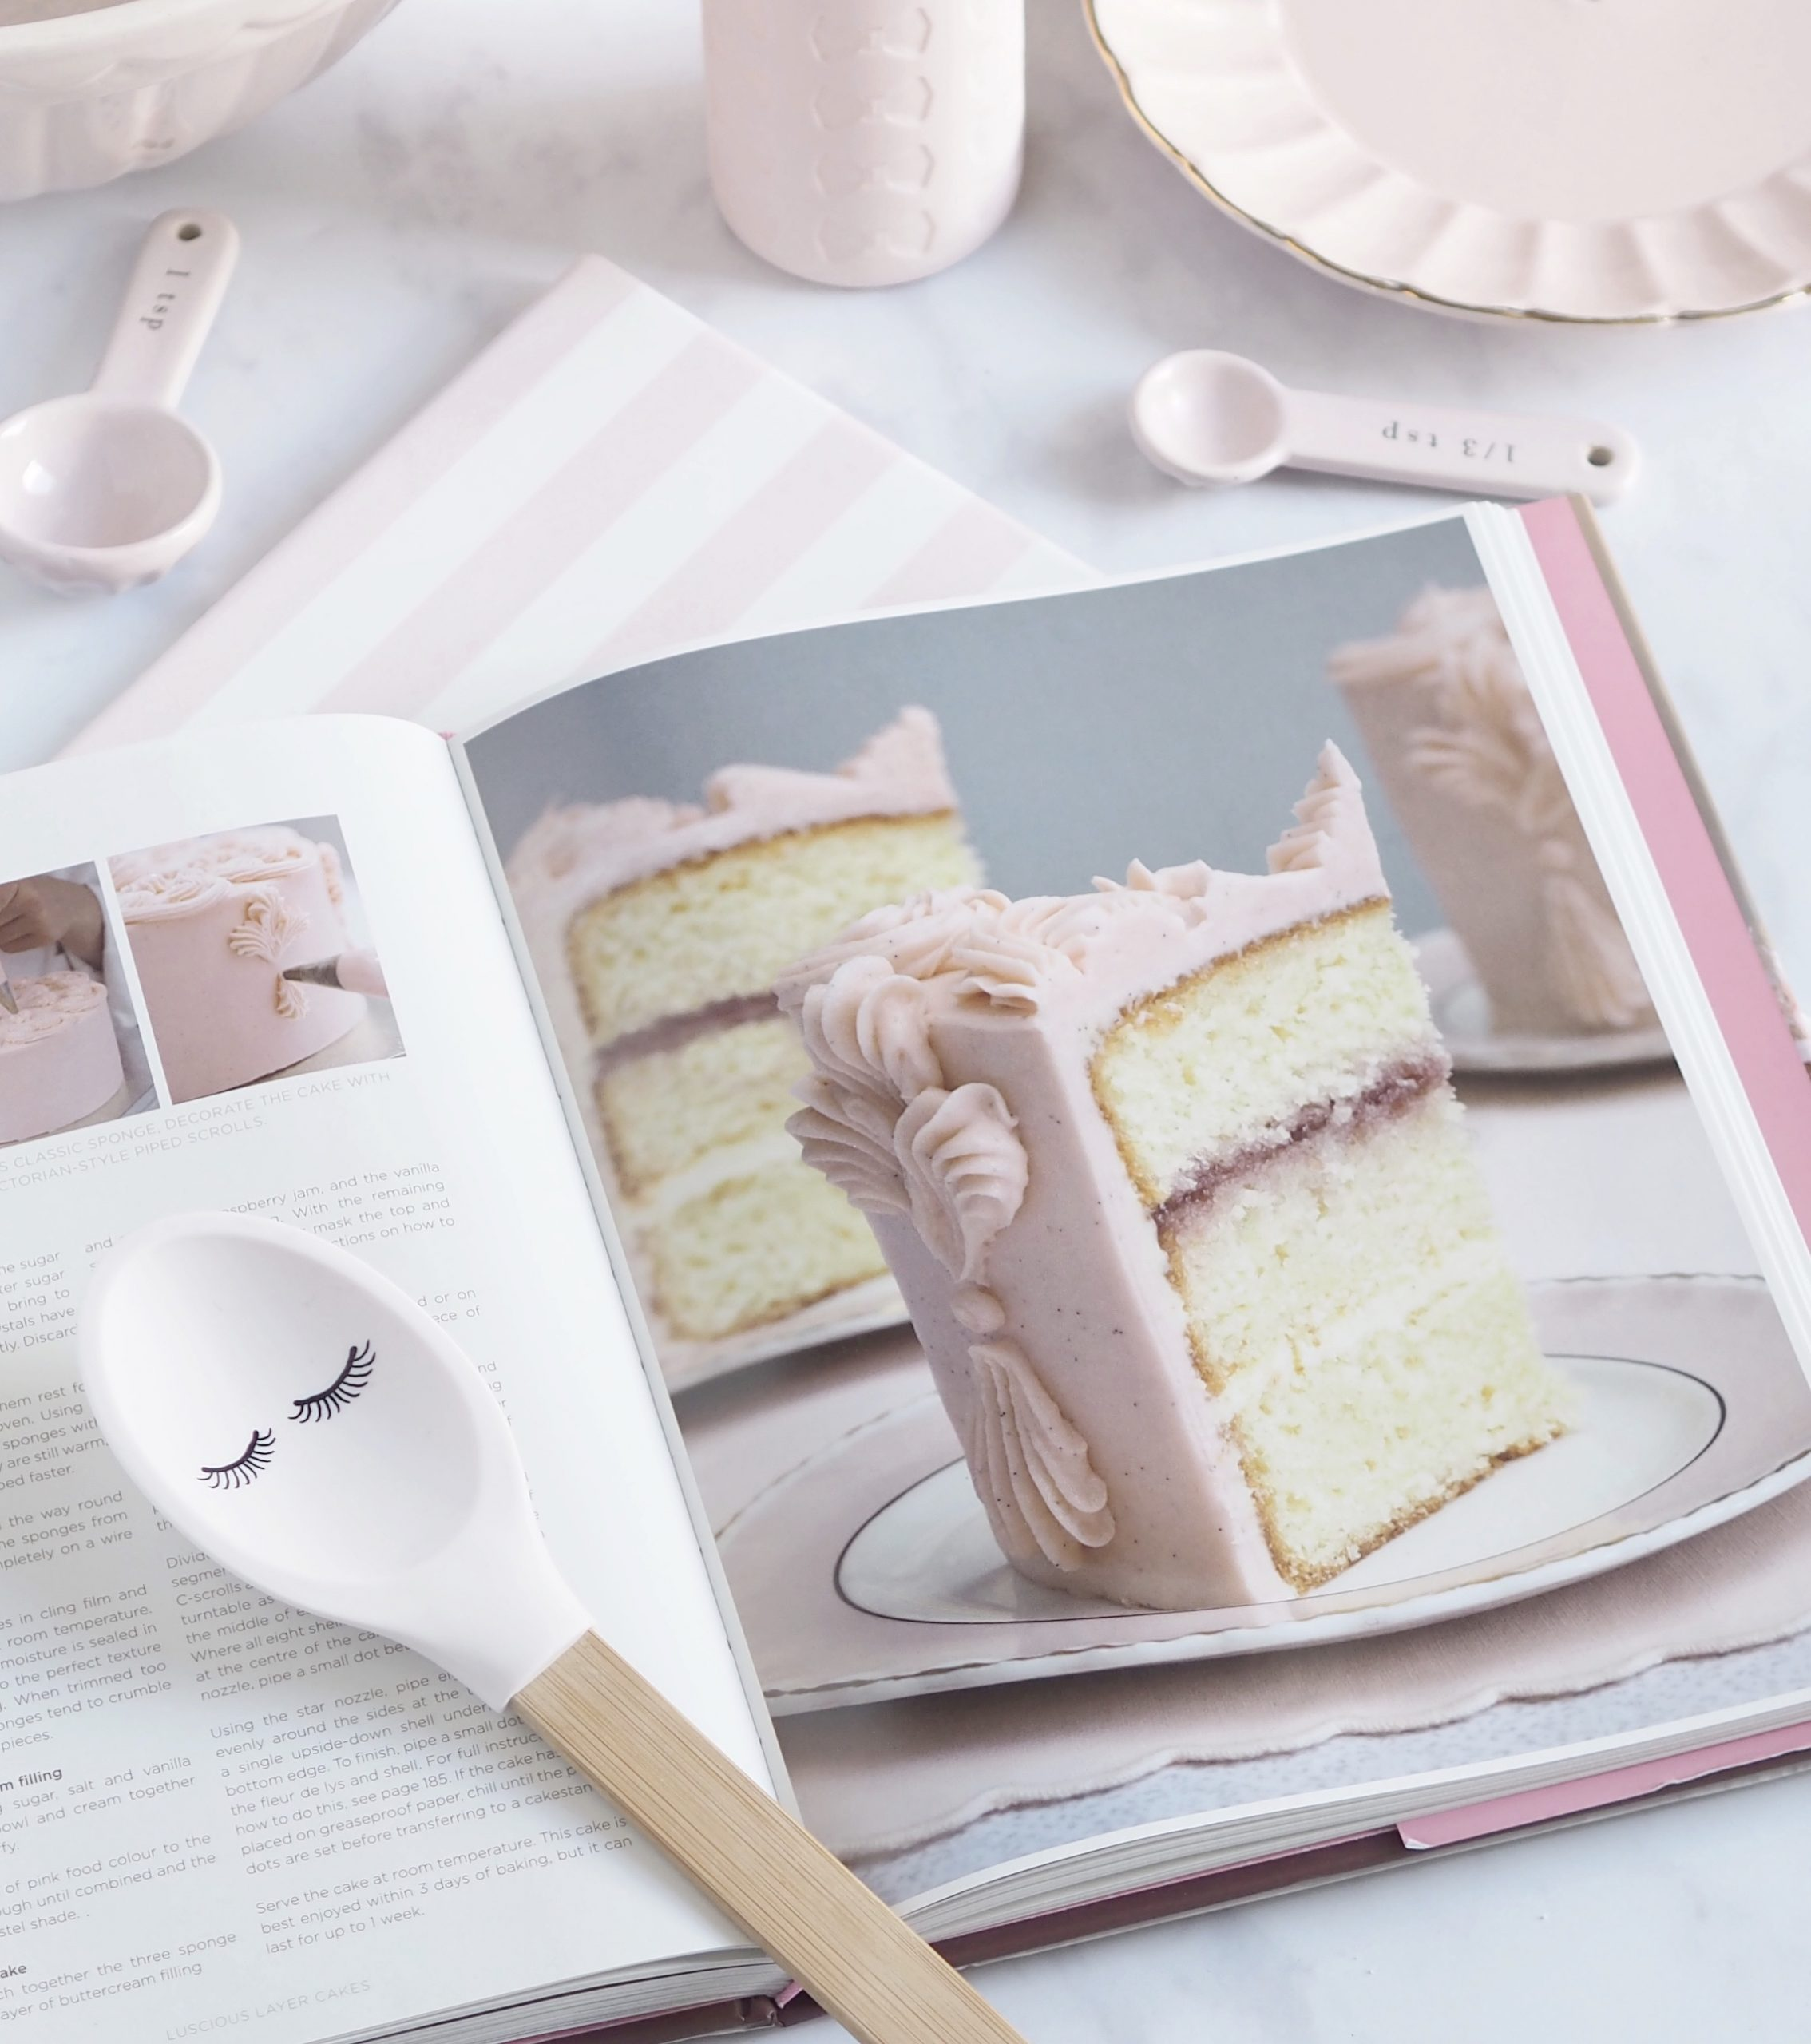 How To Make A Peggy Porschen At Home: Glorious Victoria Cake Recipe